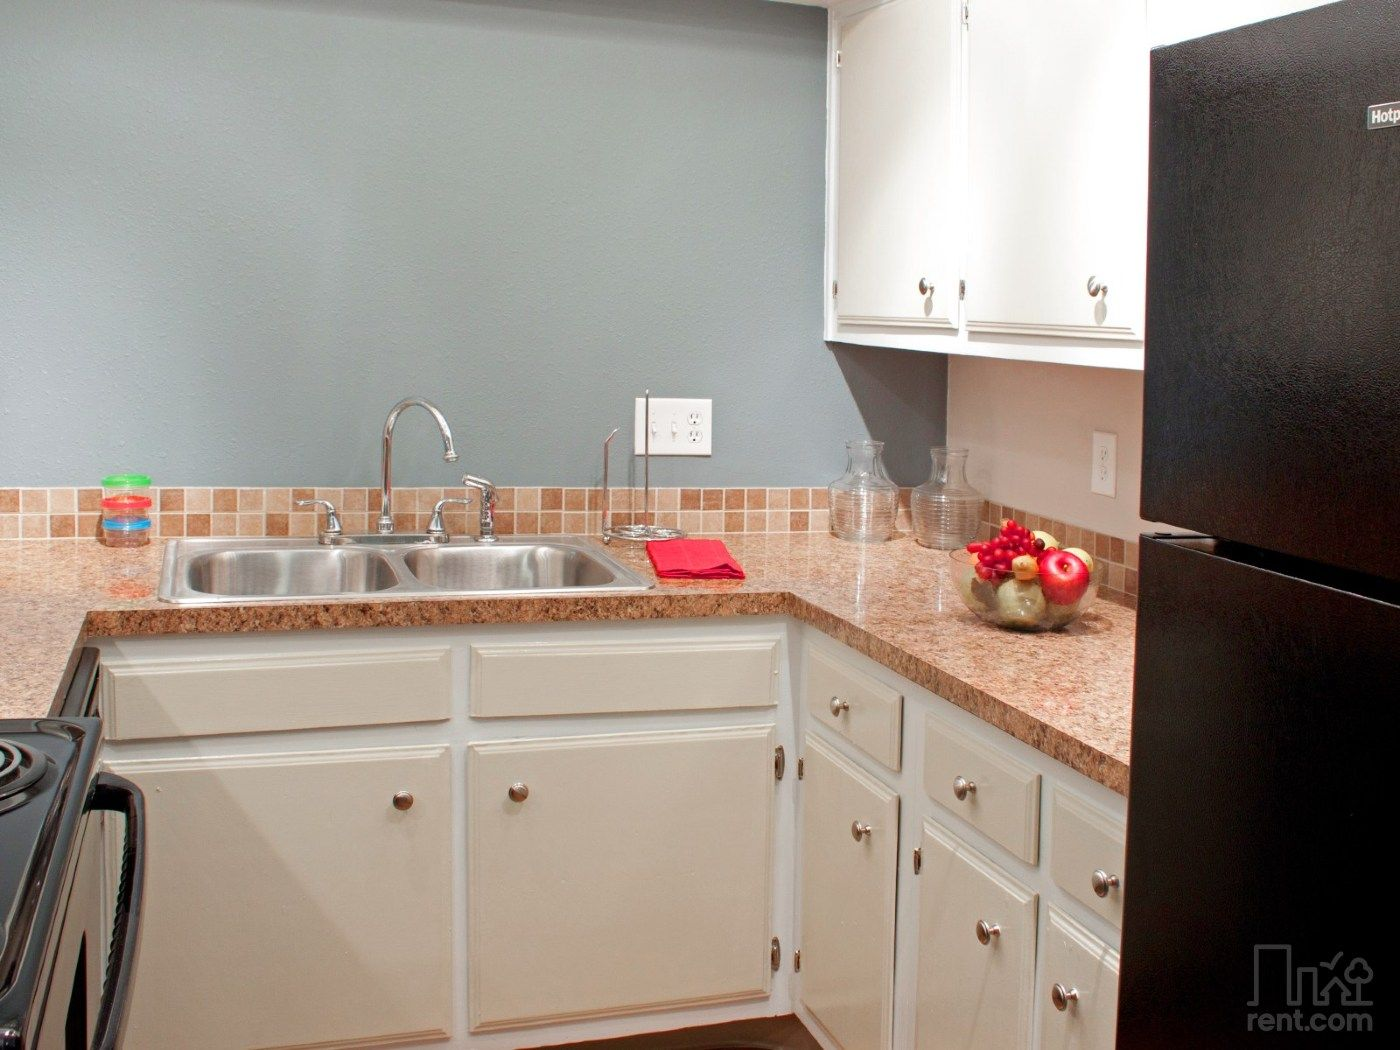 Somerford Square Apartments Lancaster, Ohio Renting a